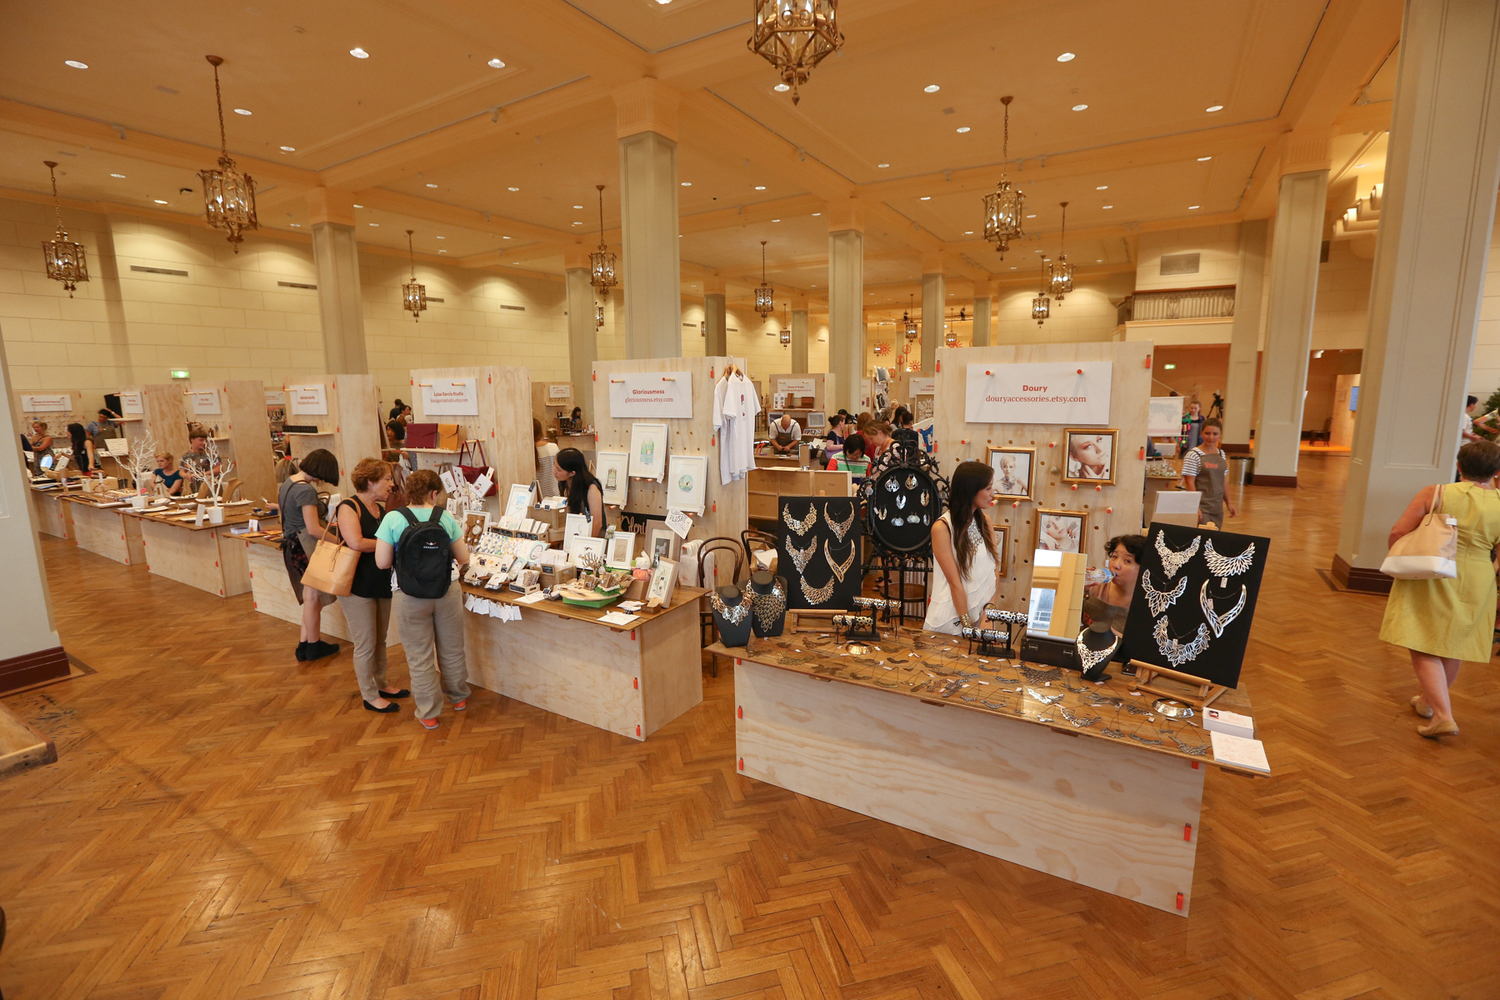 Etsy Pop Up Market - Build by Timbermill